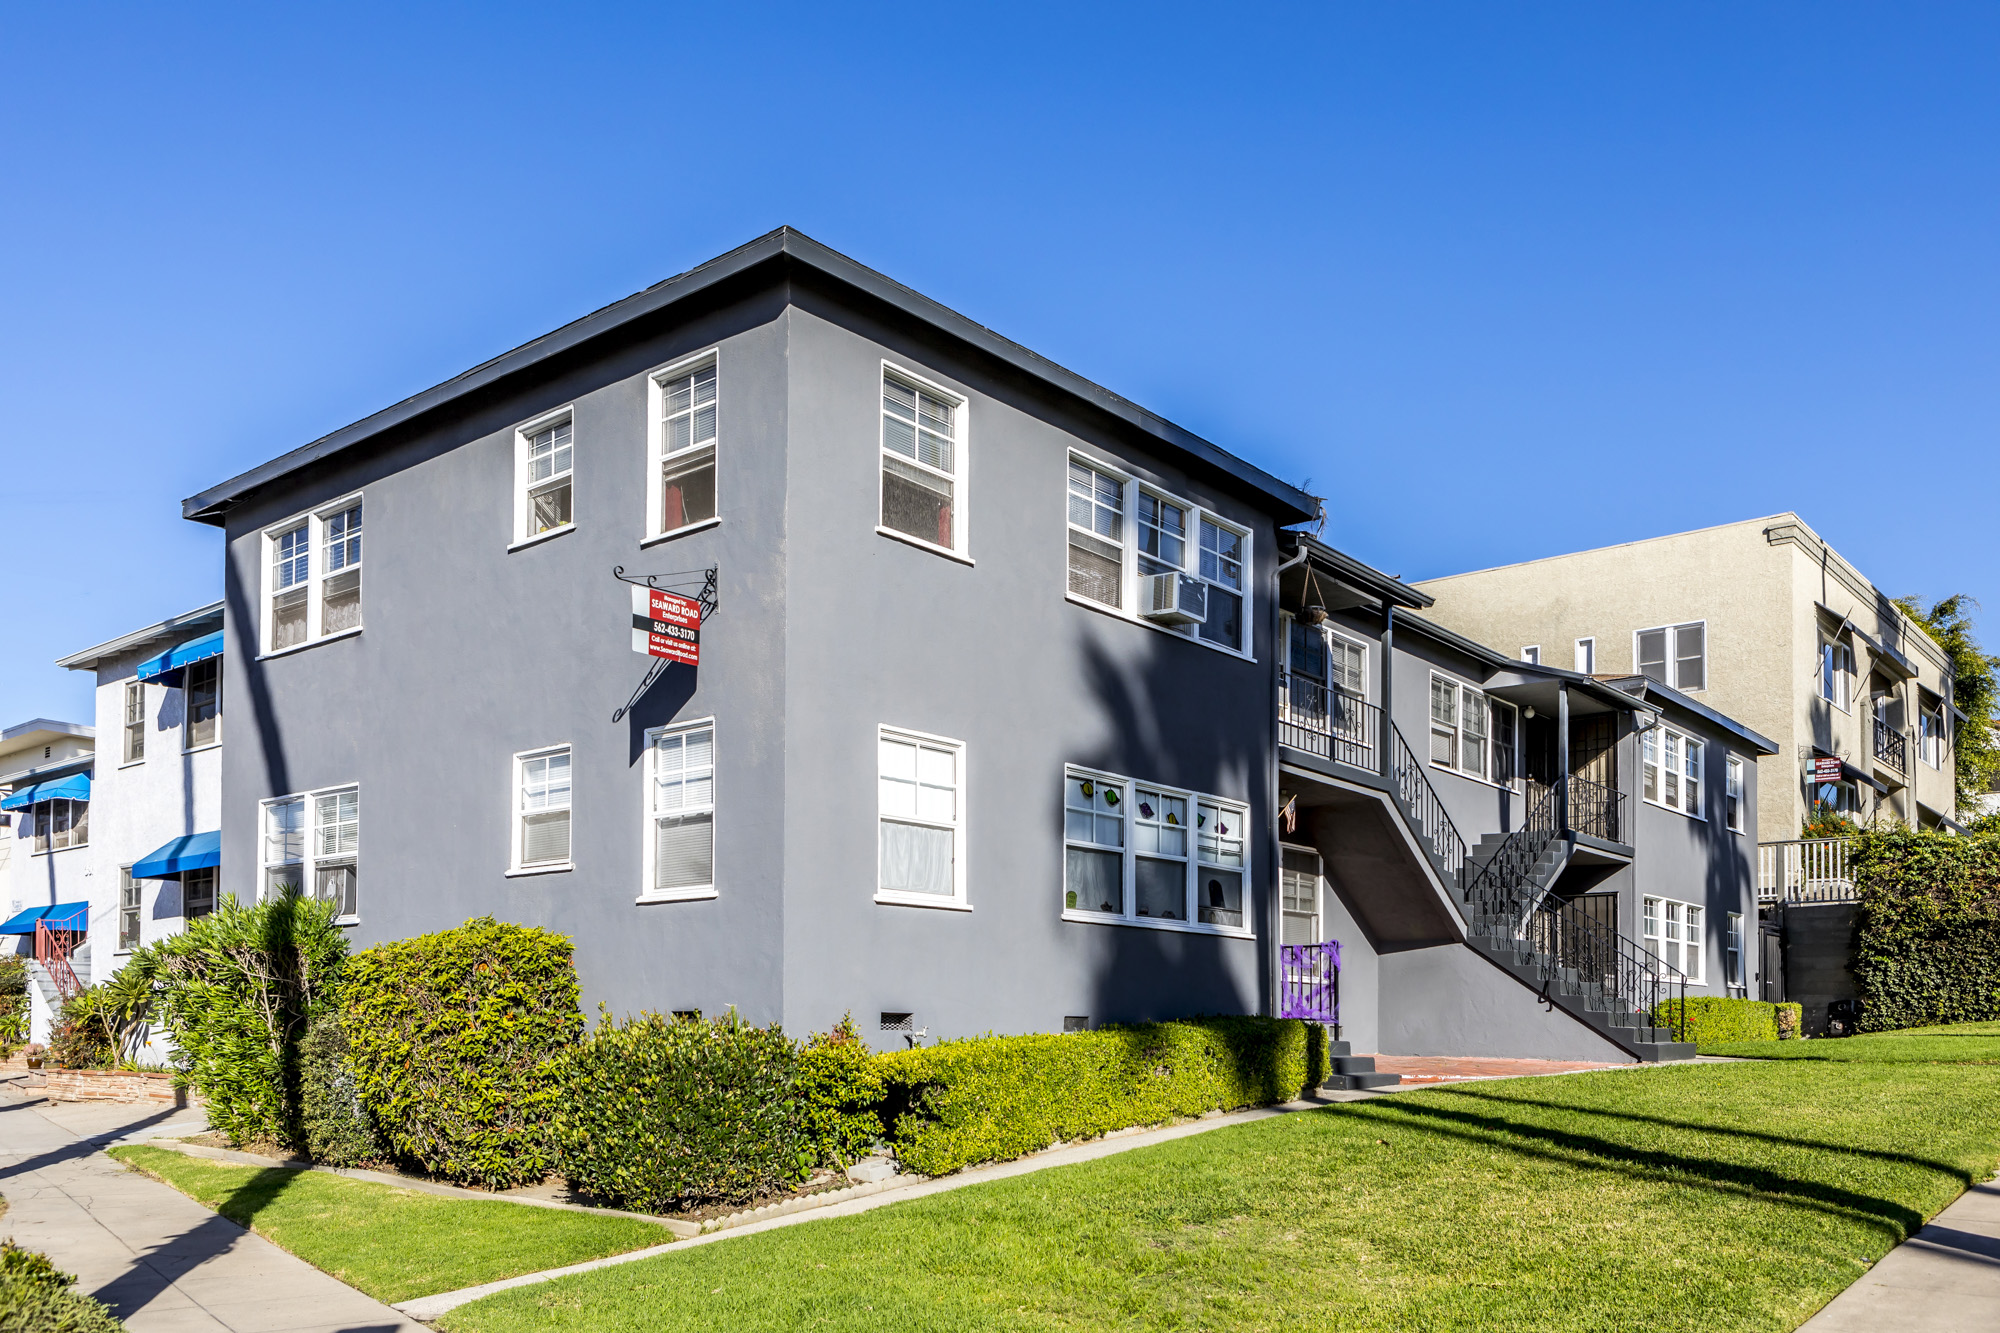 101 Termino Ave, Long Beach, CA 90803